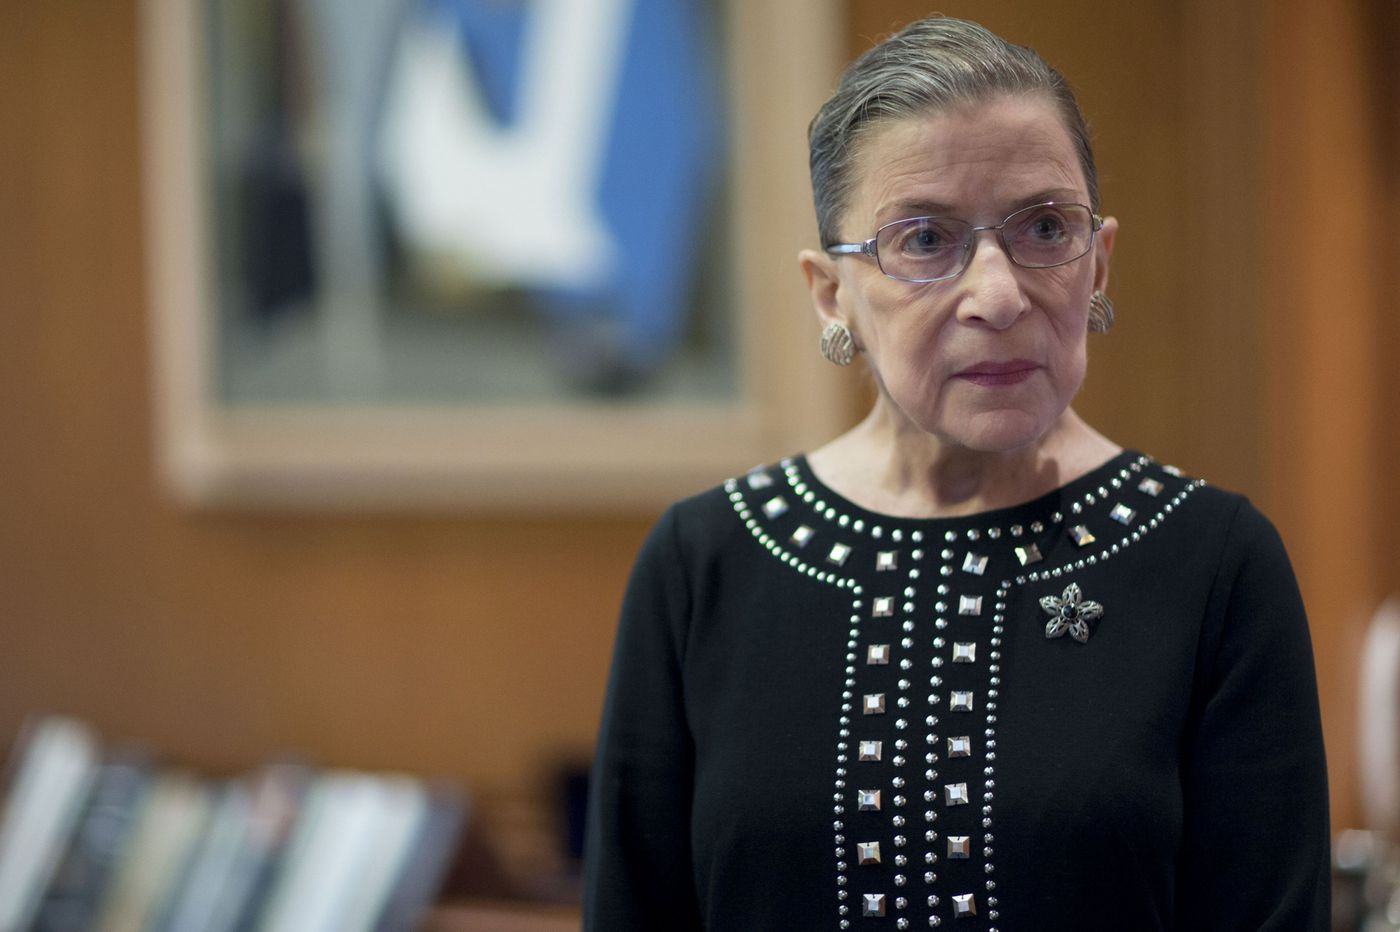 Ruth Bader Ginsburg made the impossible look easy | Opinion